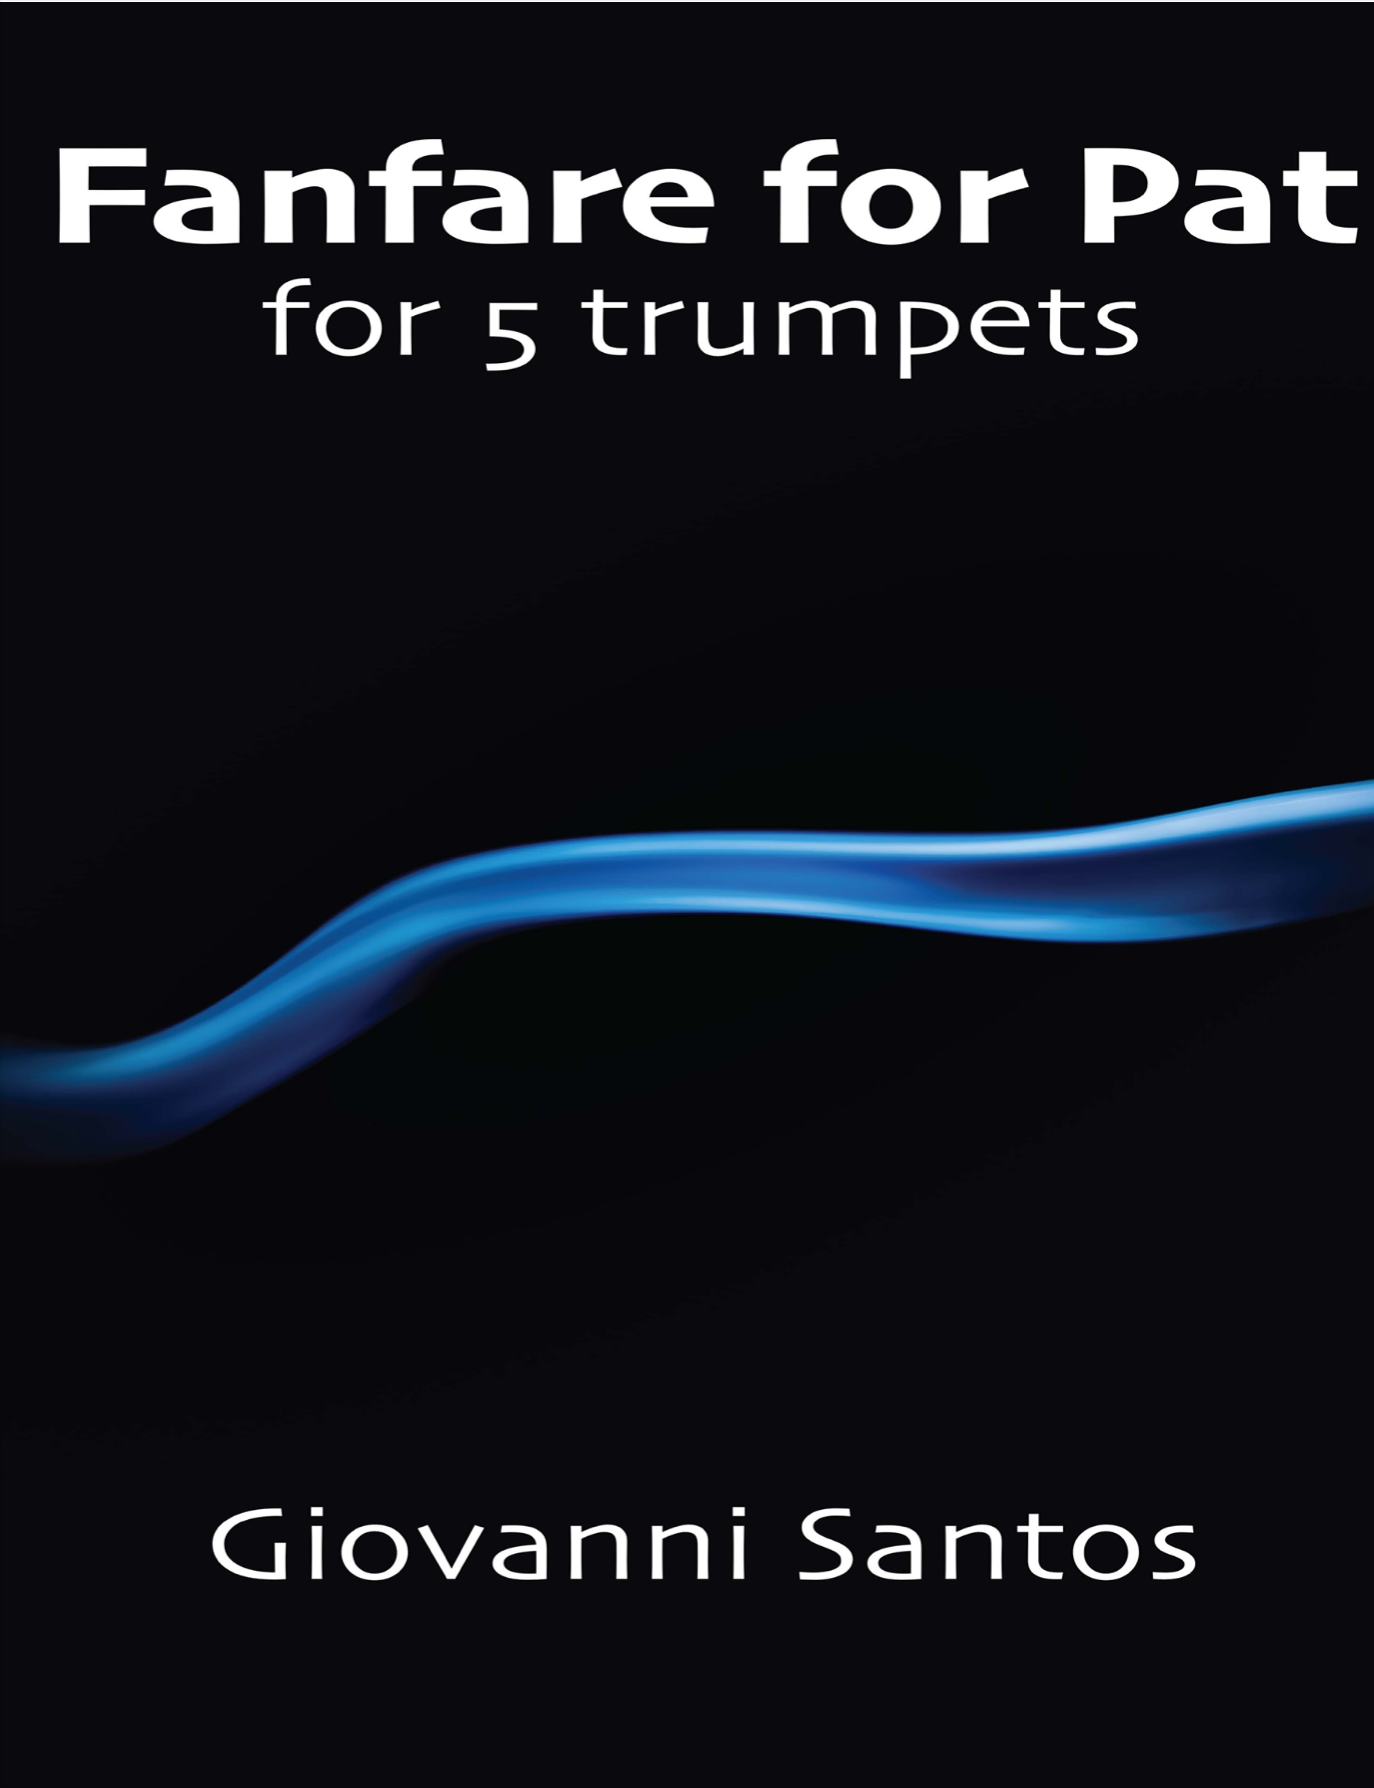 Fanfare For Pat by Giovanni Santos